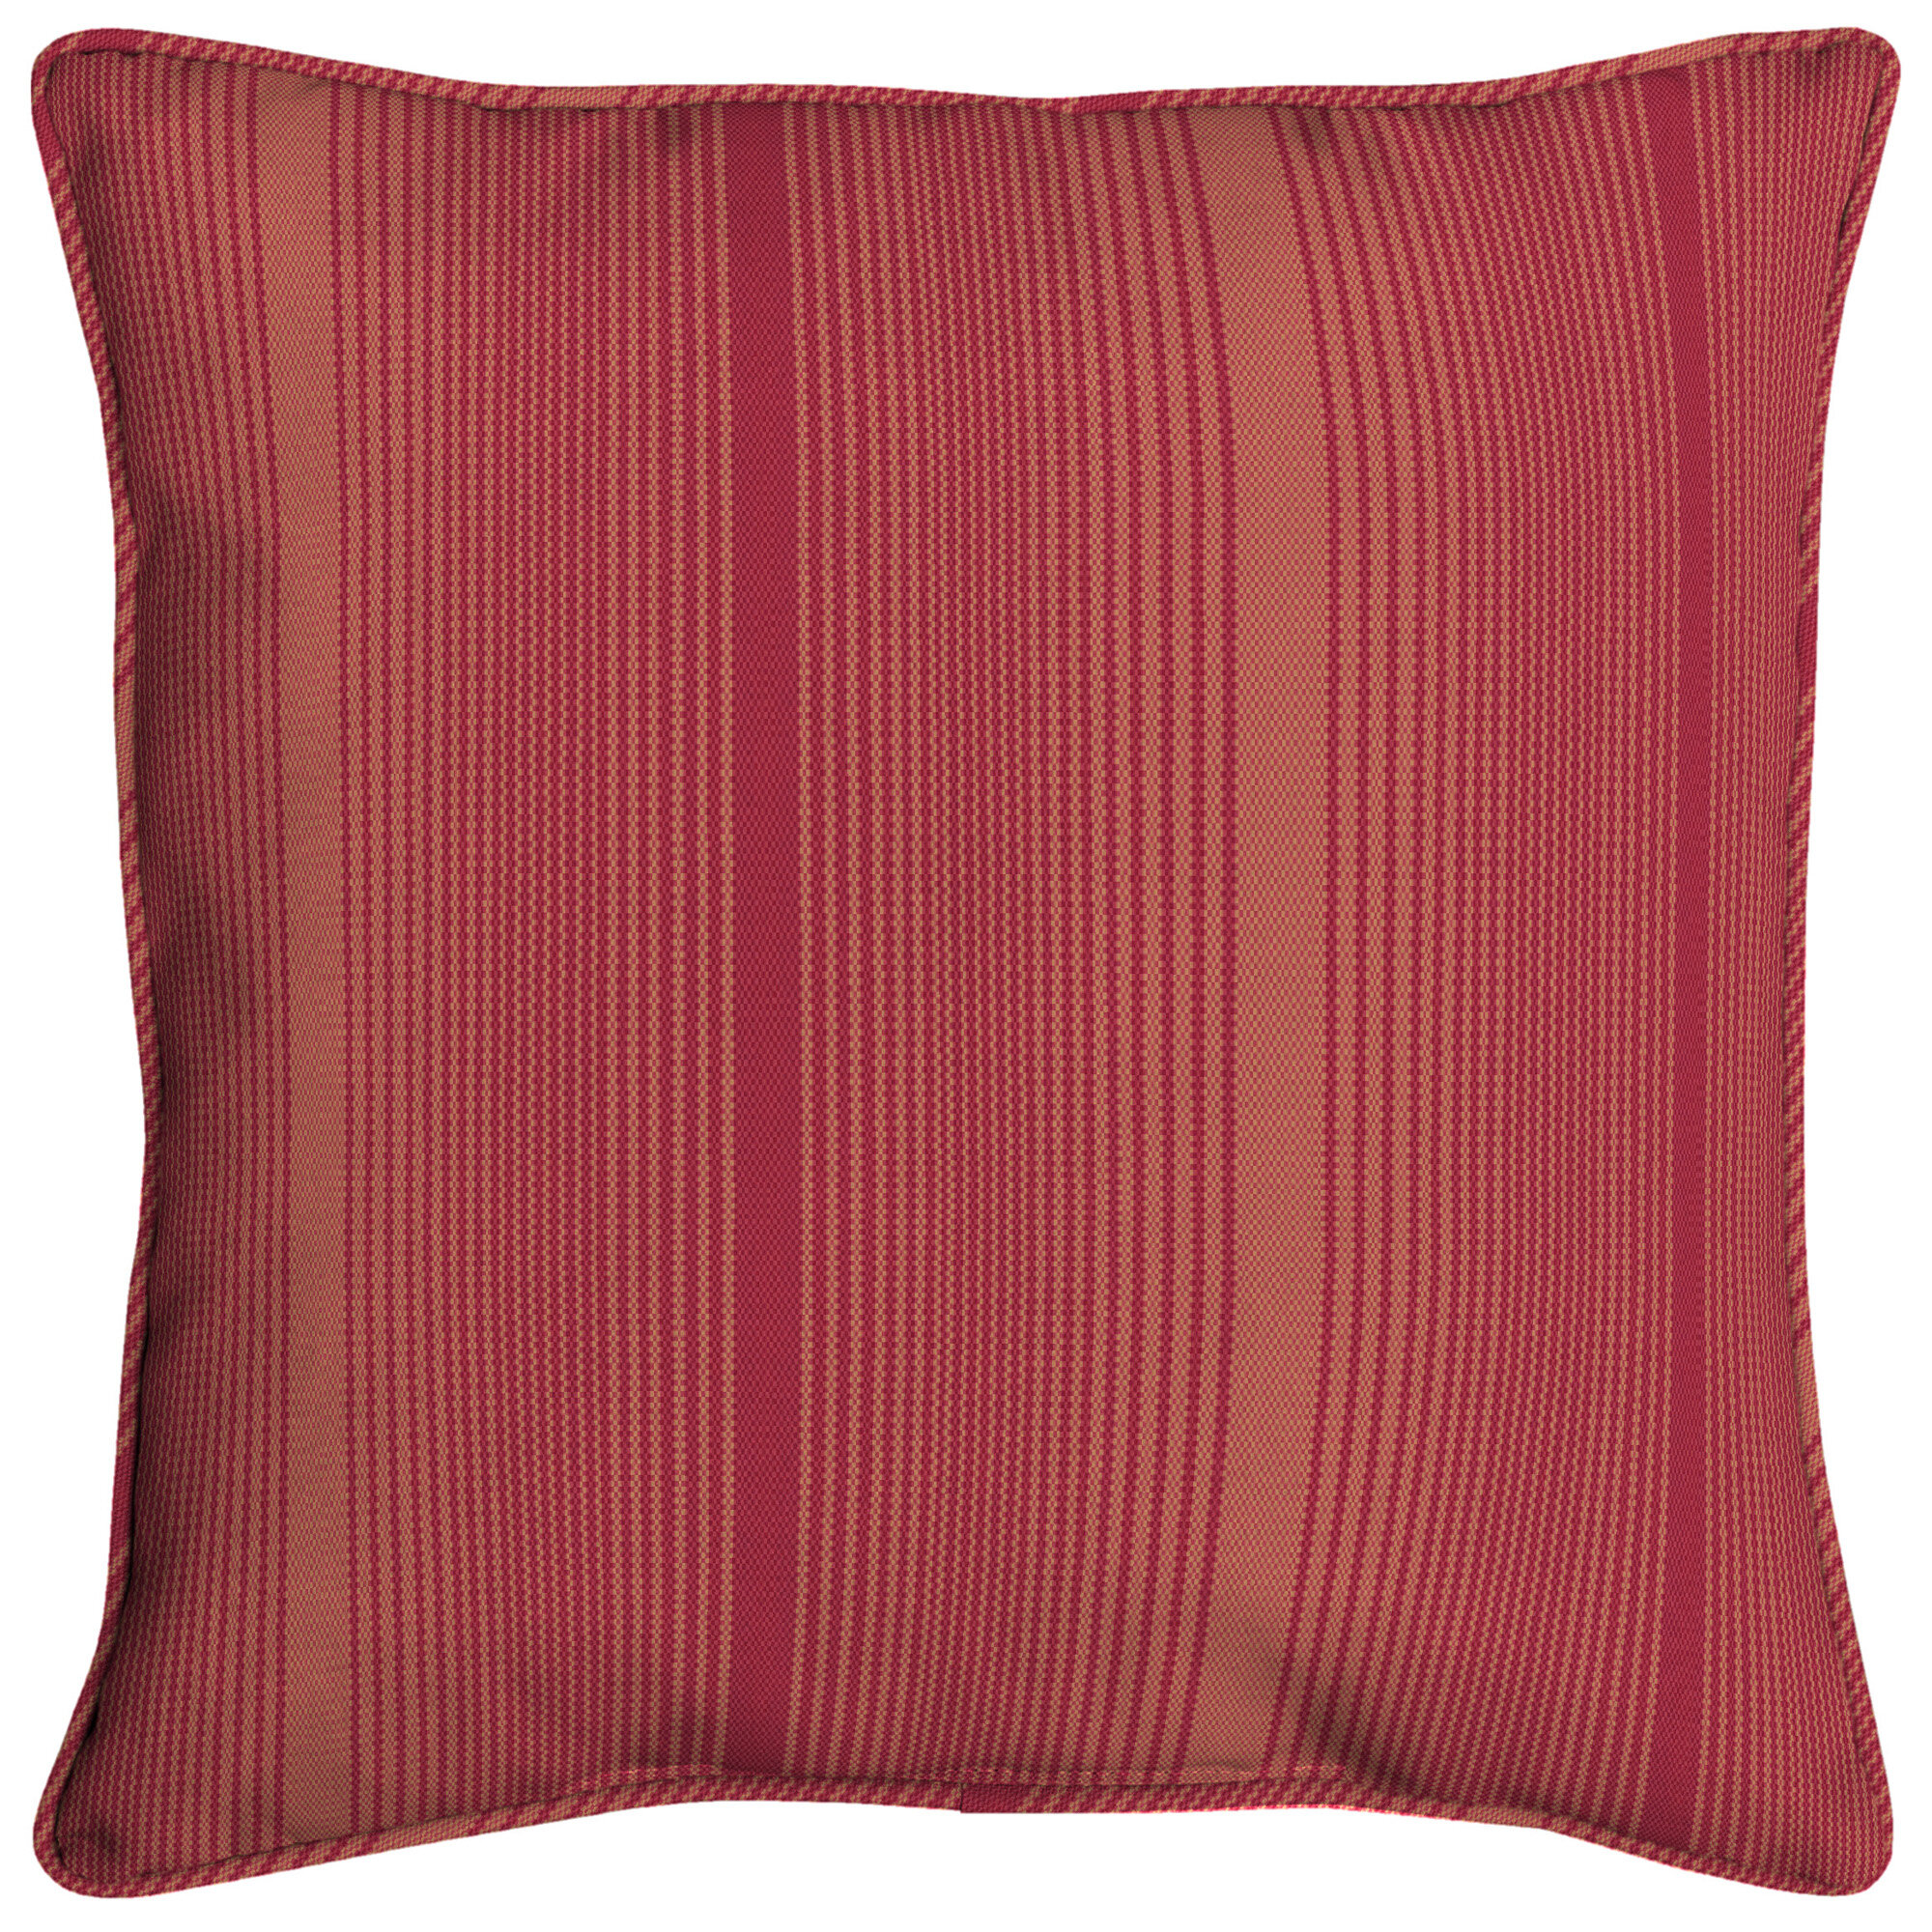 Highland Dunes Lanford Indoor Outdoor Striped Throw Pillow Wayfair